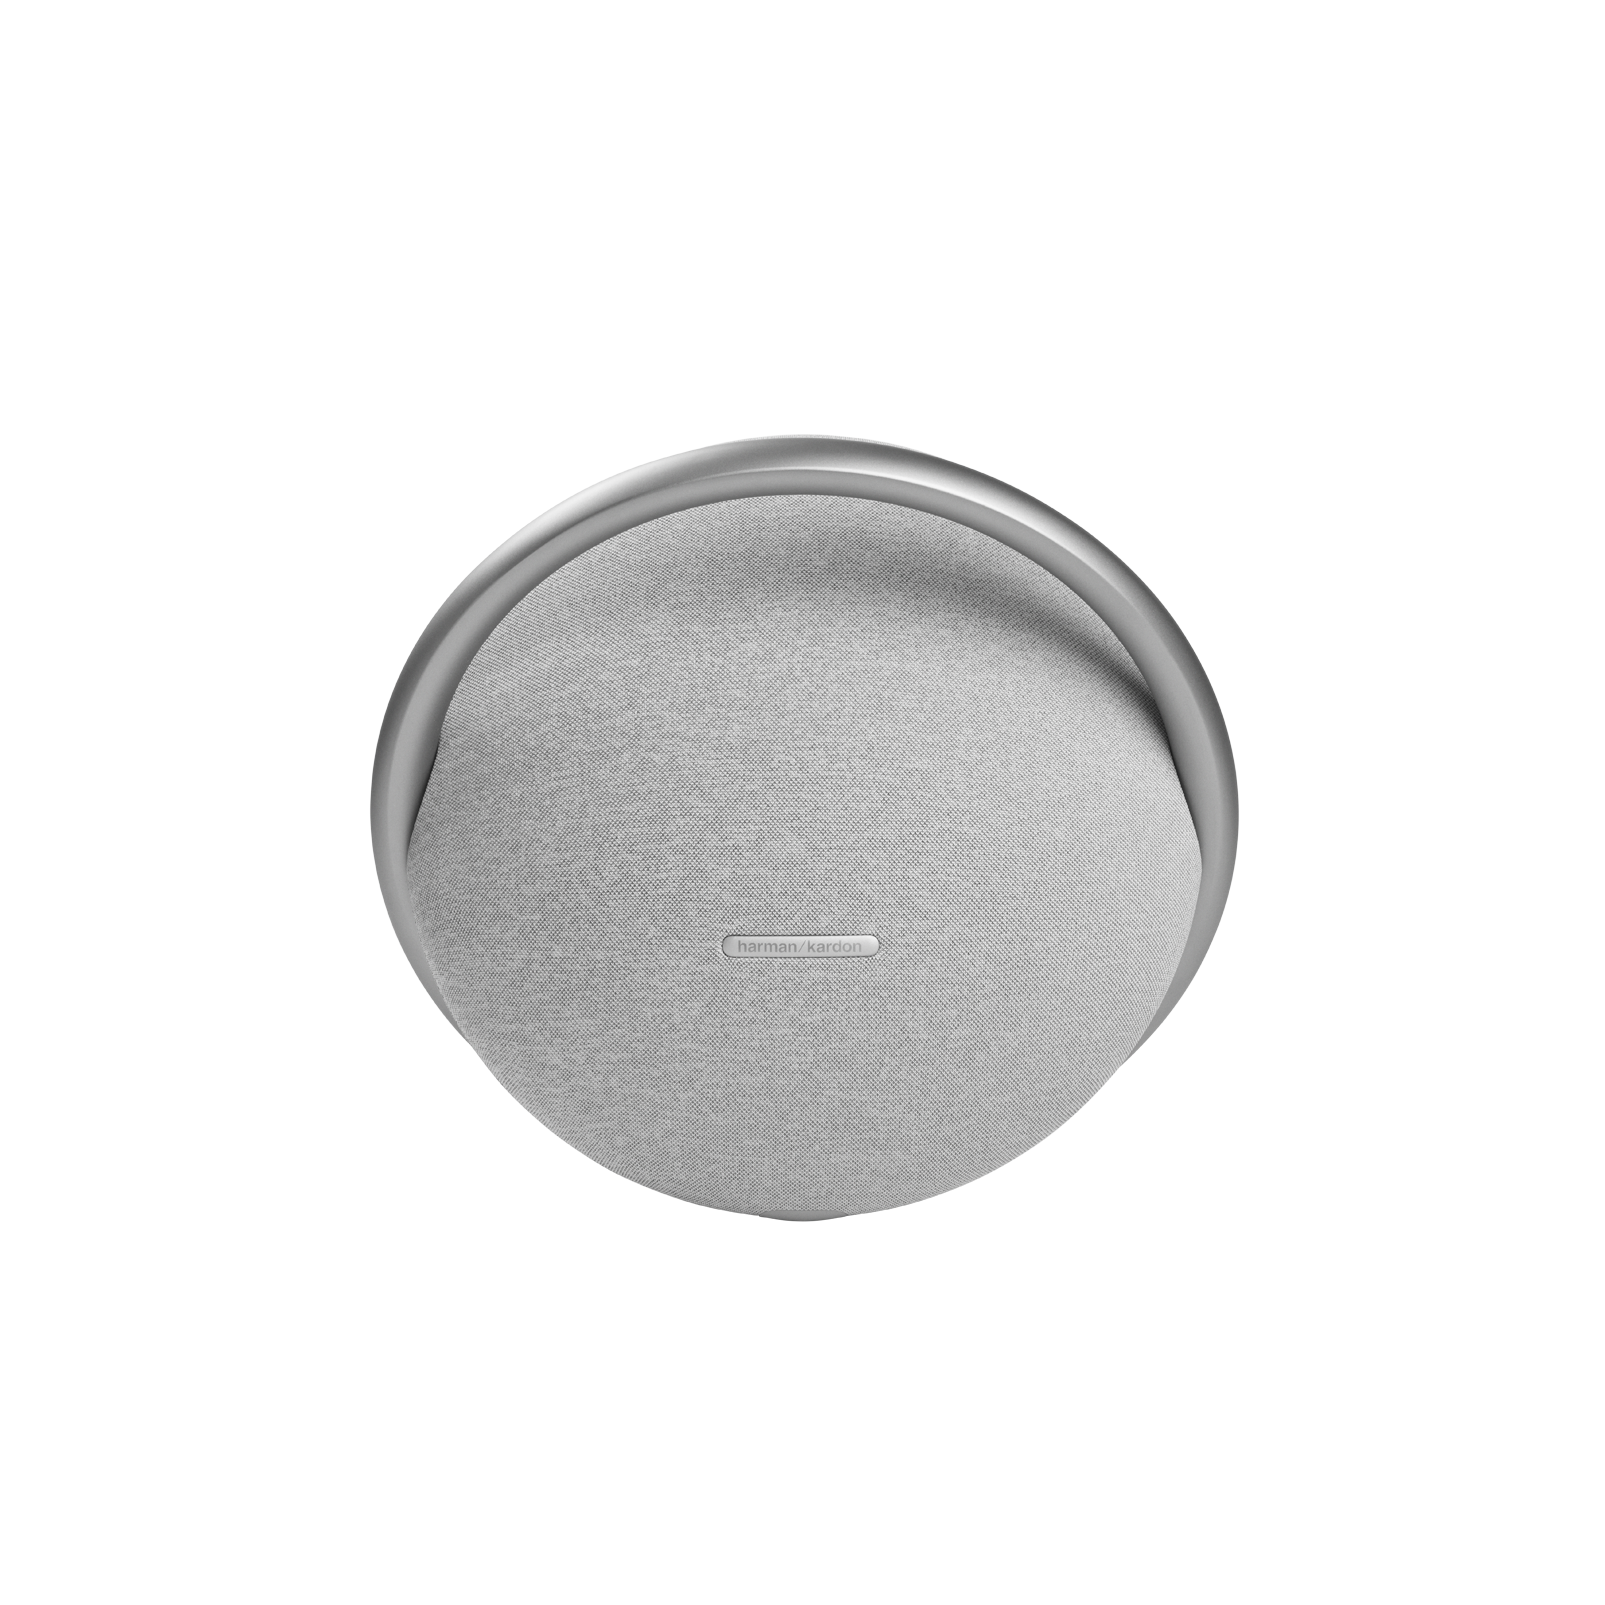 Onyx Studio 7 - Grey - Portable Stereo Bluetooth Speaker - Front